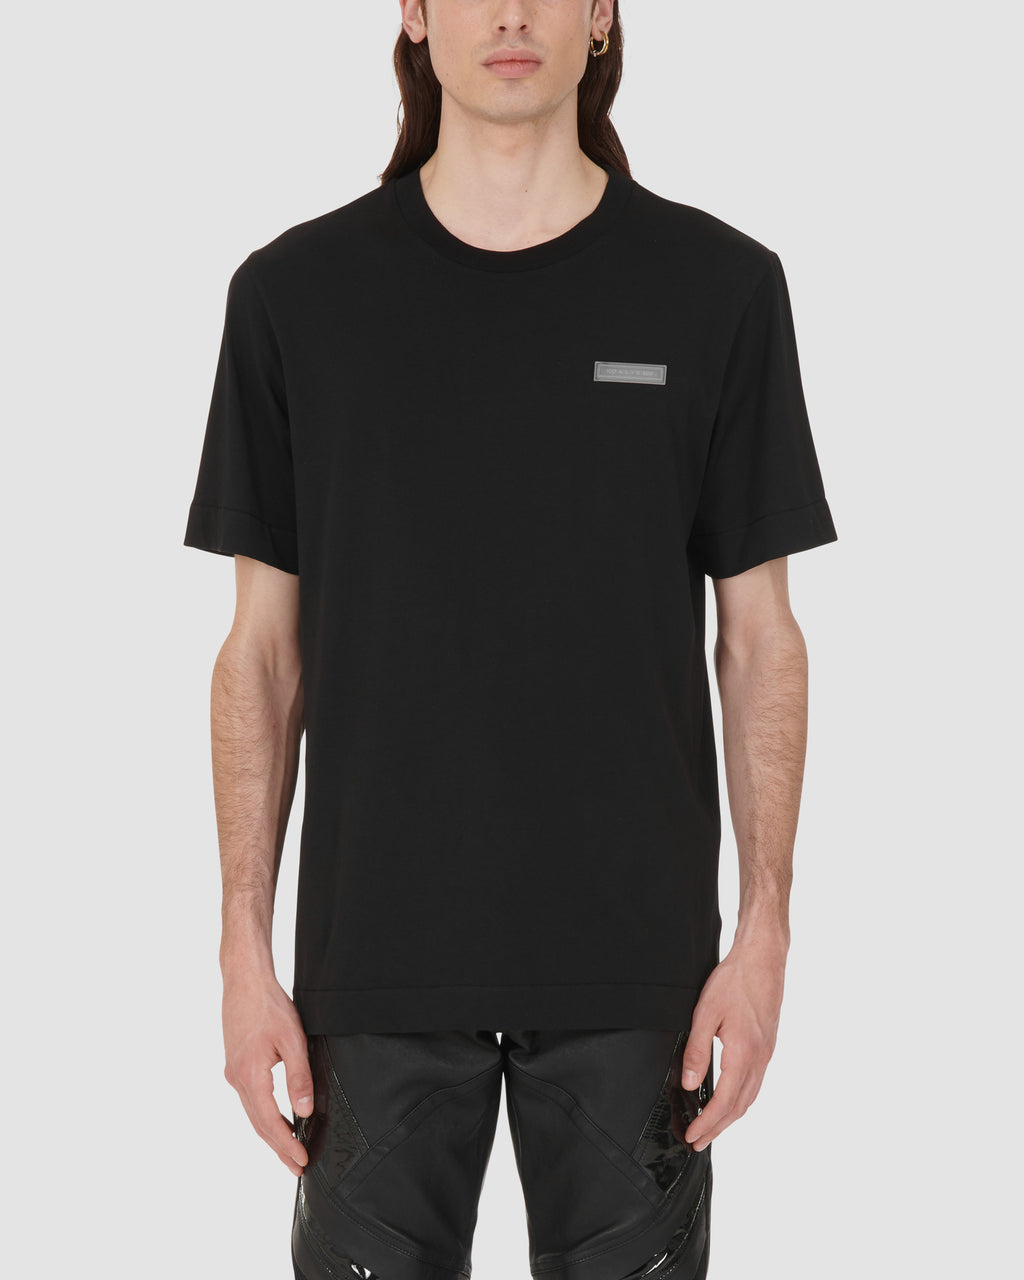 1017 ALYX 9SM | SS TEE W RUBBER PATCH AND PRINT | T-Shirt | BLACK, Google Shopping, Man, MEN, S20, SS20, T-Shirts